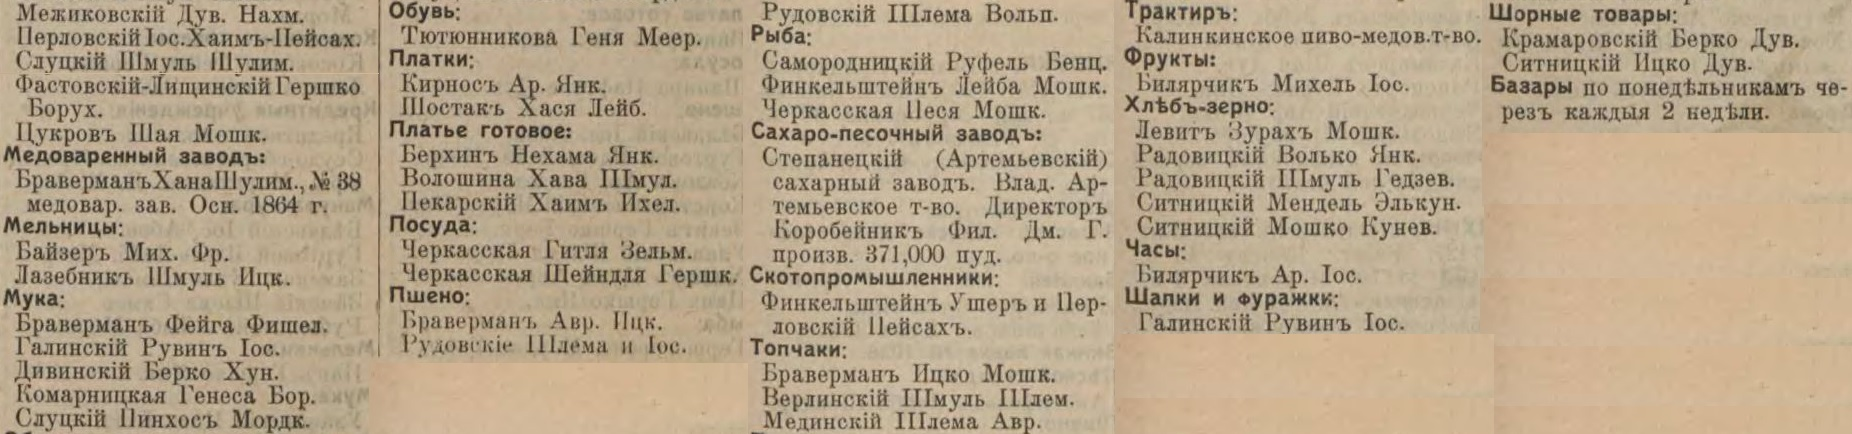 Stepantsy entrepreneurs list from Russian Empire Business Directories by 1913, part 2